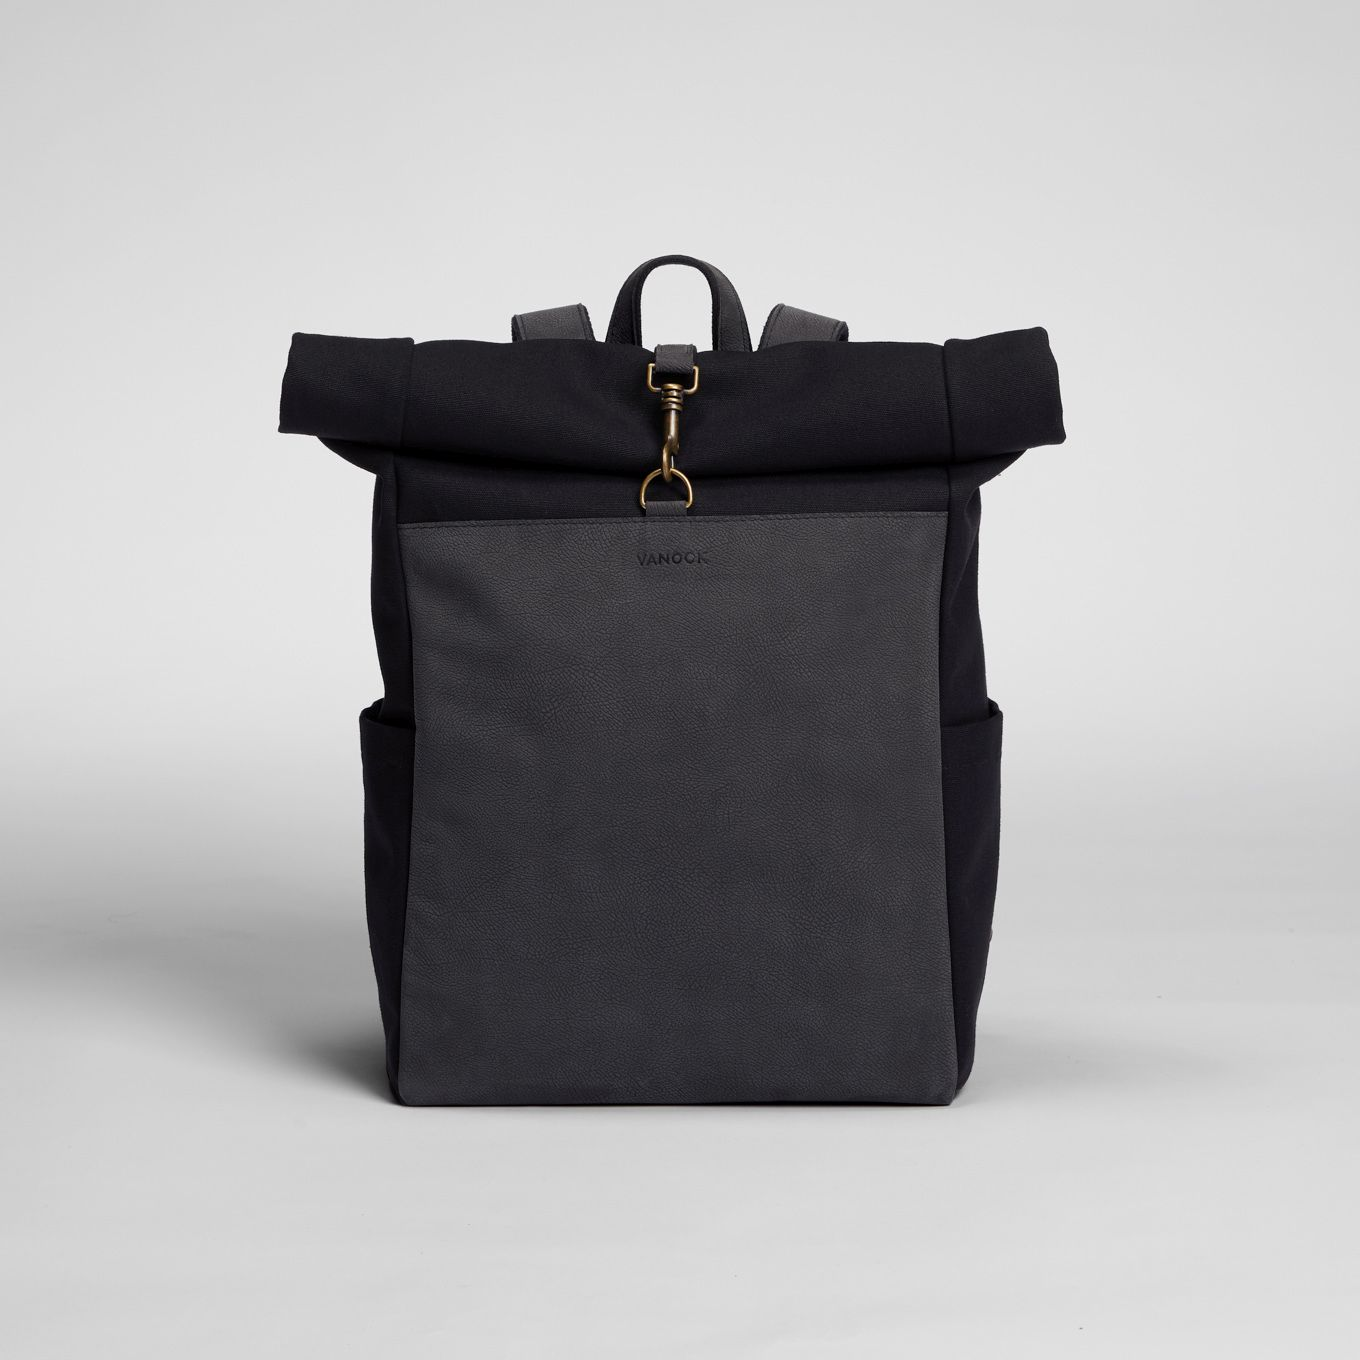 445_Backpack_Canvas-Leather Front-integrated Laptop Case